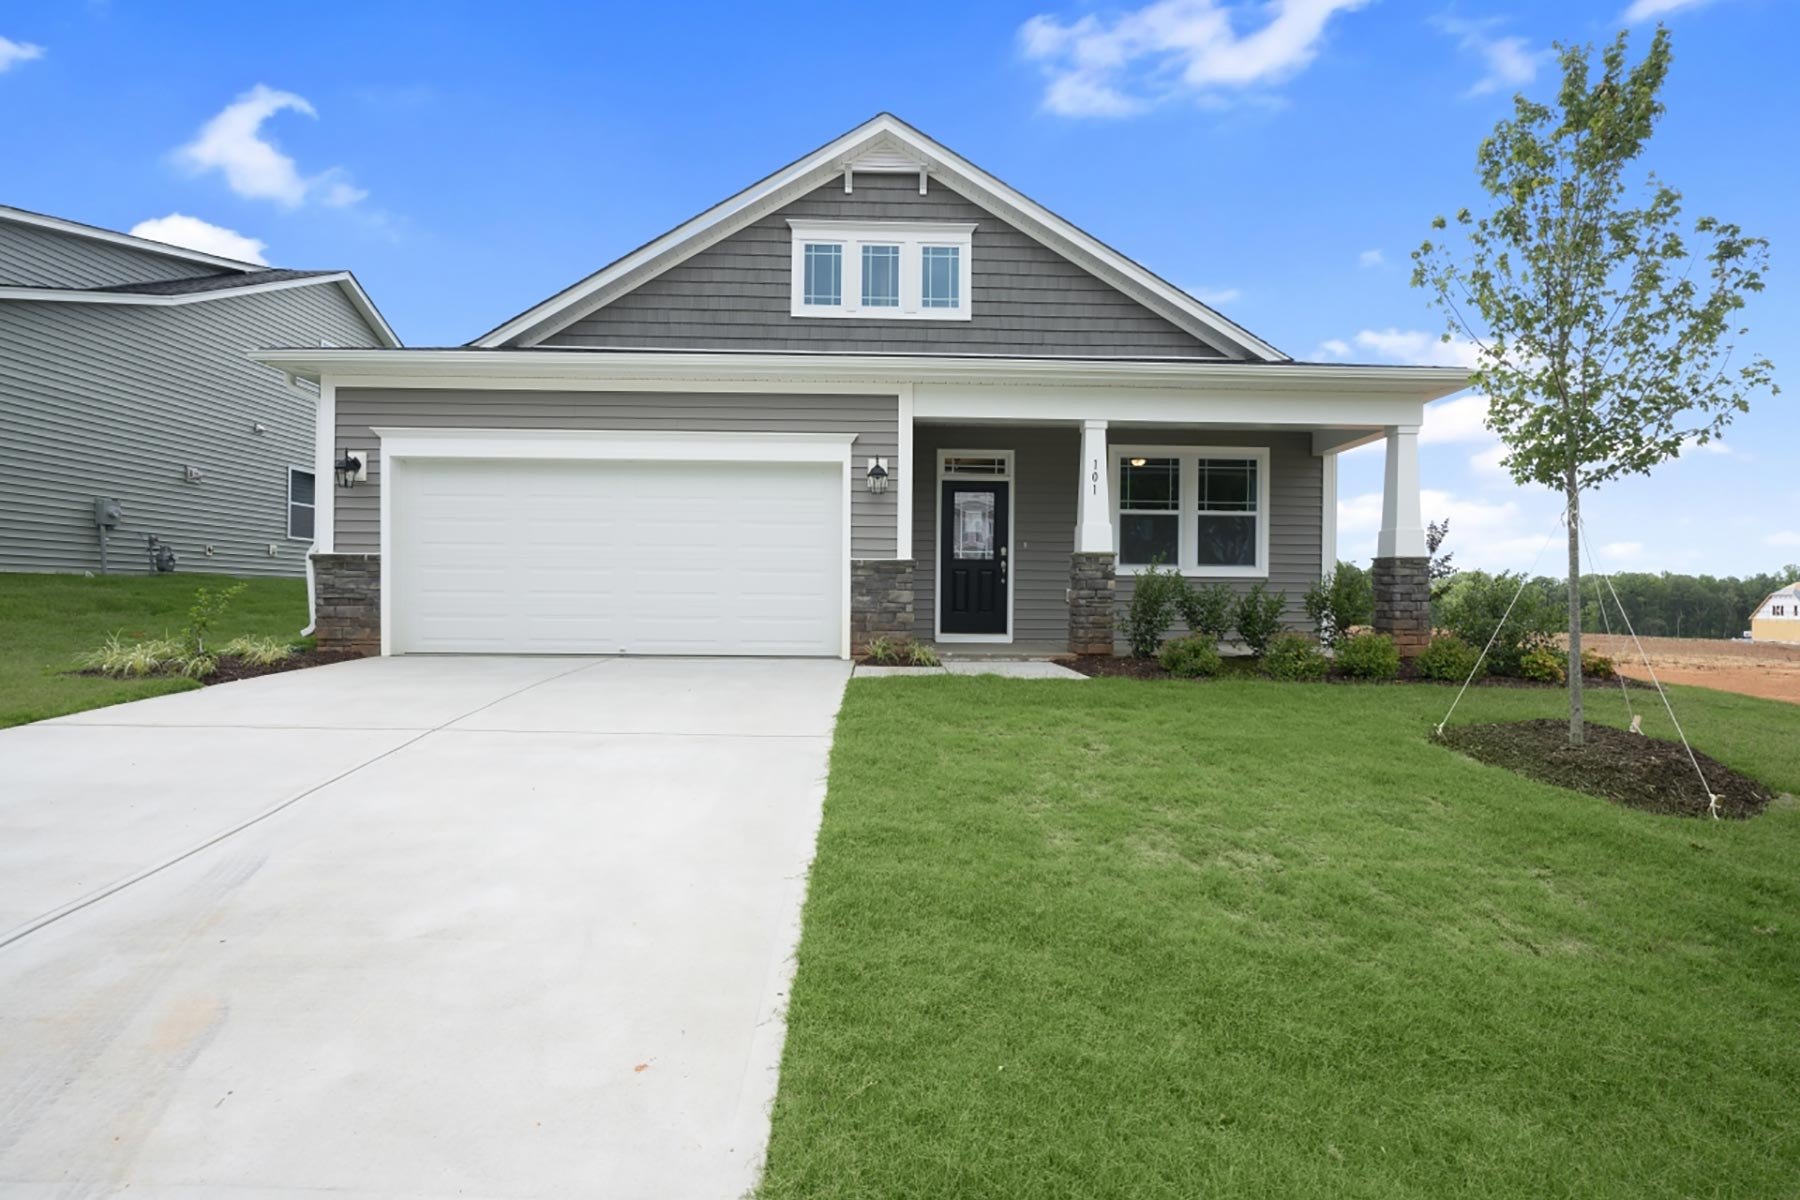 Evelyn Plan rdu-bedford-evelyn-exterior3 at Wendell Falls in Wendell North Carolina by Mattamy Homes